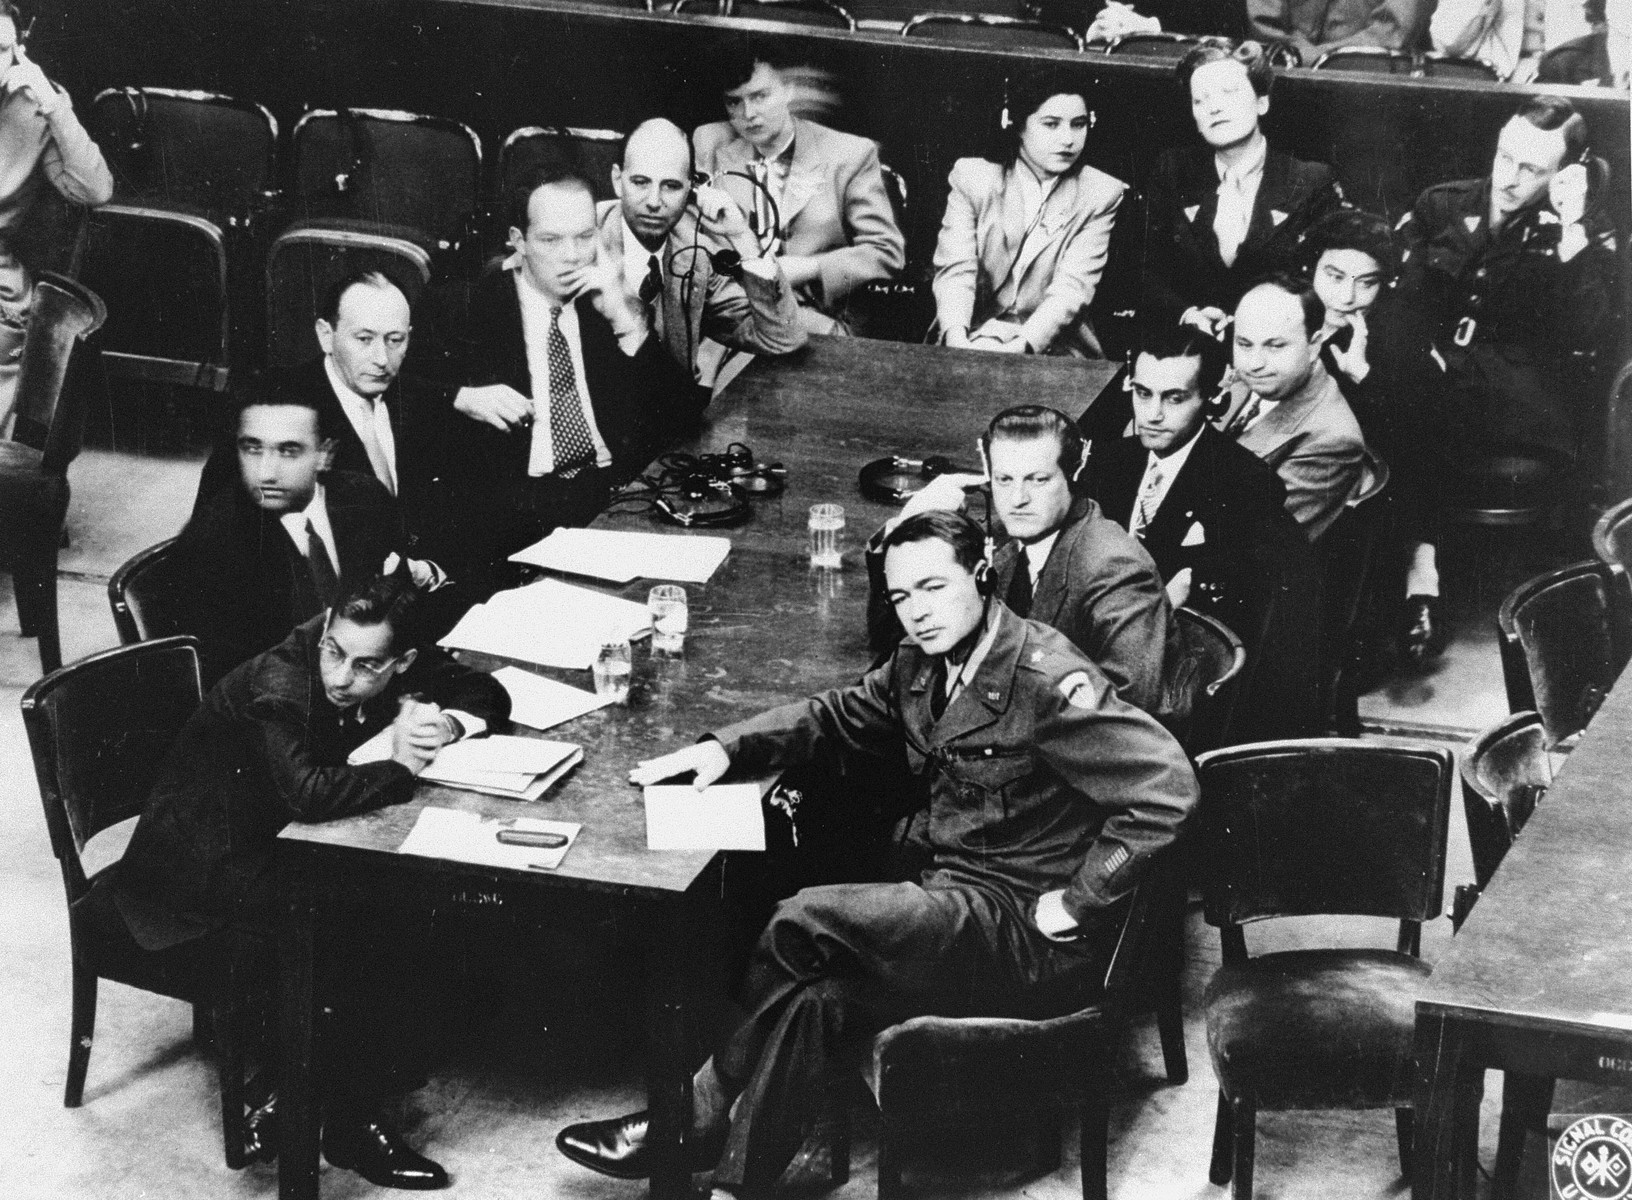 Brigadier General Telford Taylor (front right), Chief of Counsel for War Crimes, sits at the prosecution table with his staff during the reading of the charges against the defendants in the RuSHA Trial.